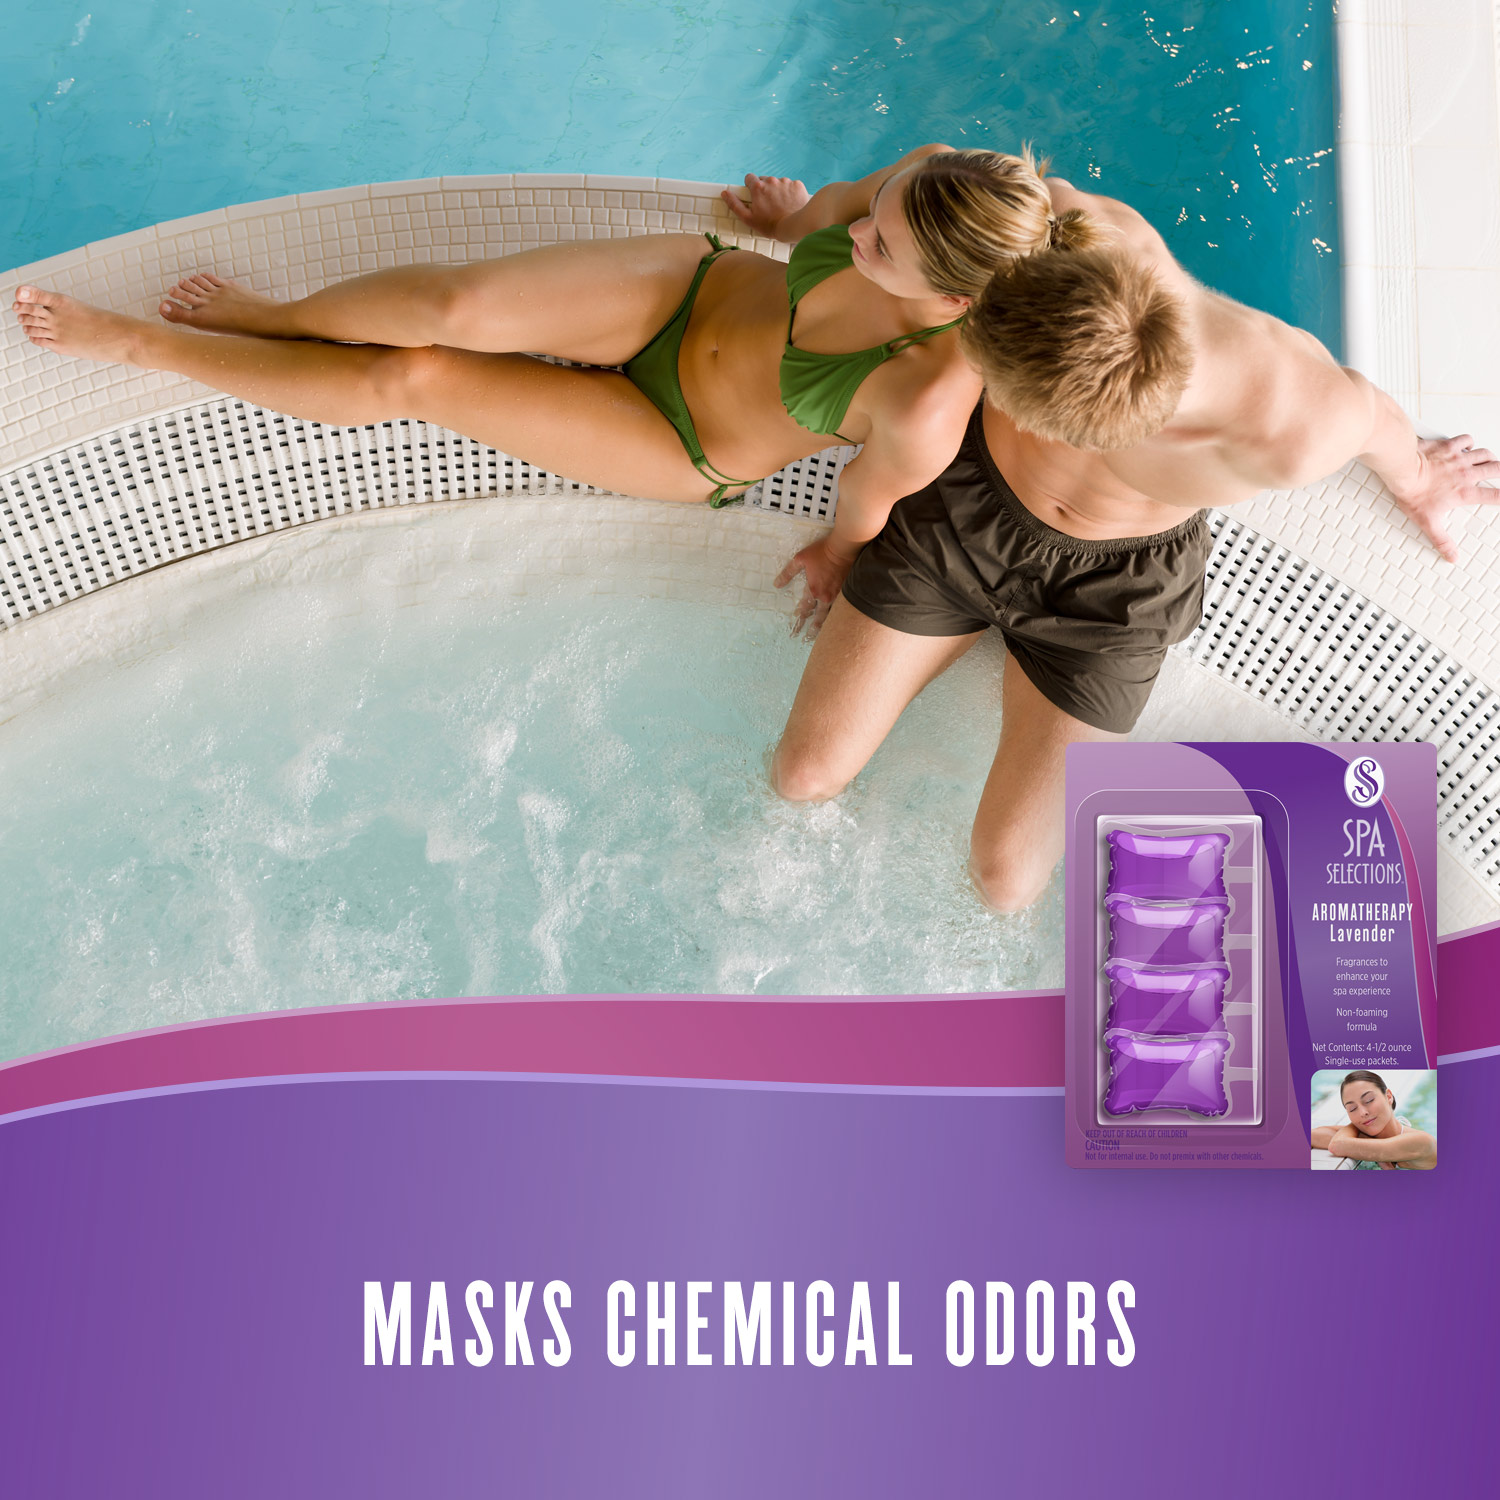 Spa Selections lavender aromatherapy masks chemical odors in spa. Photo of man and woman enjoying a hot tub attached to a pool.